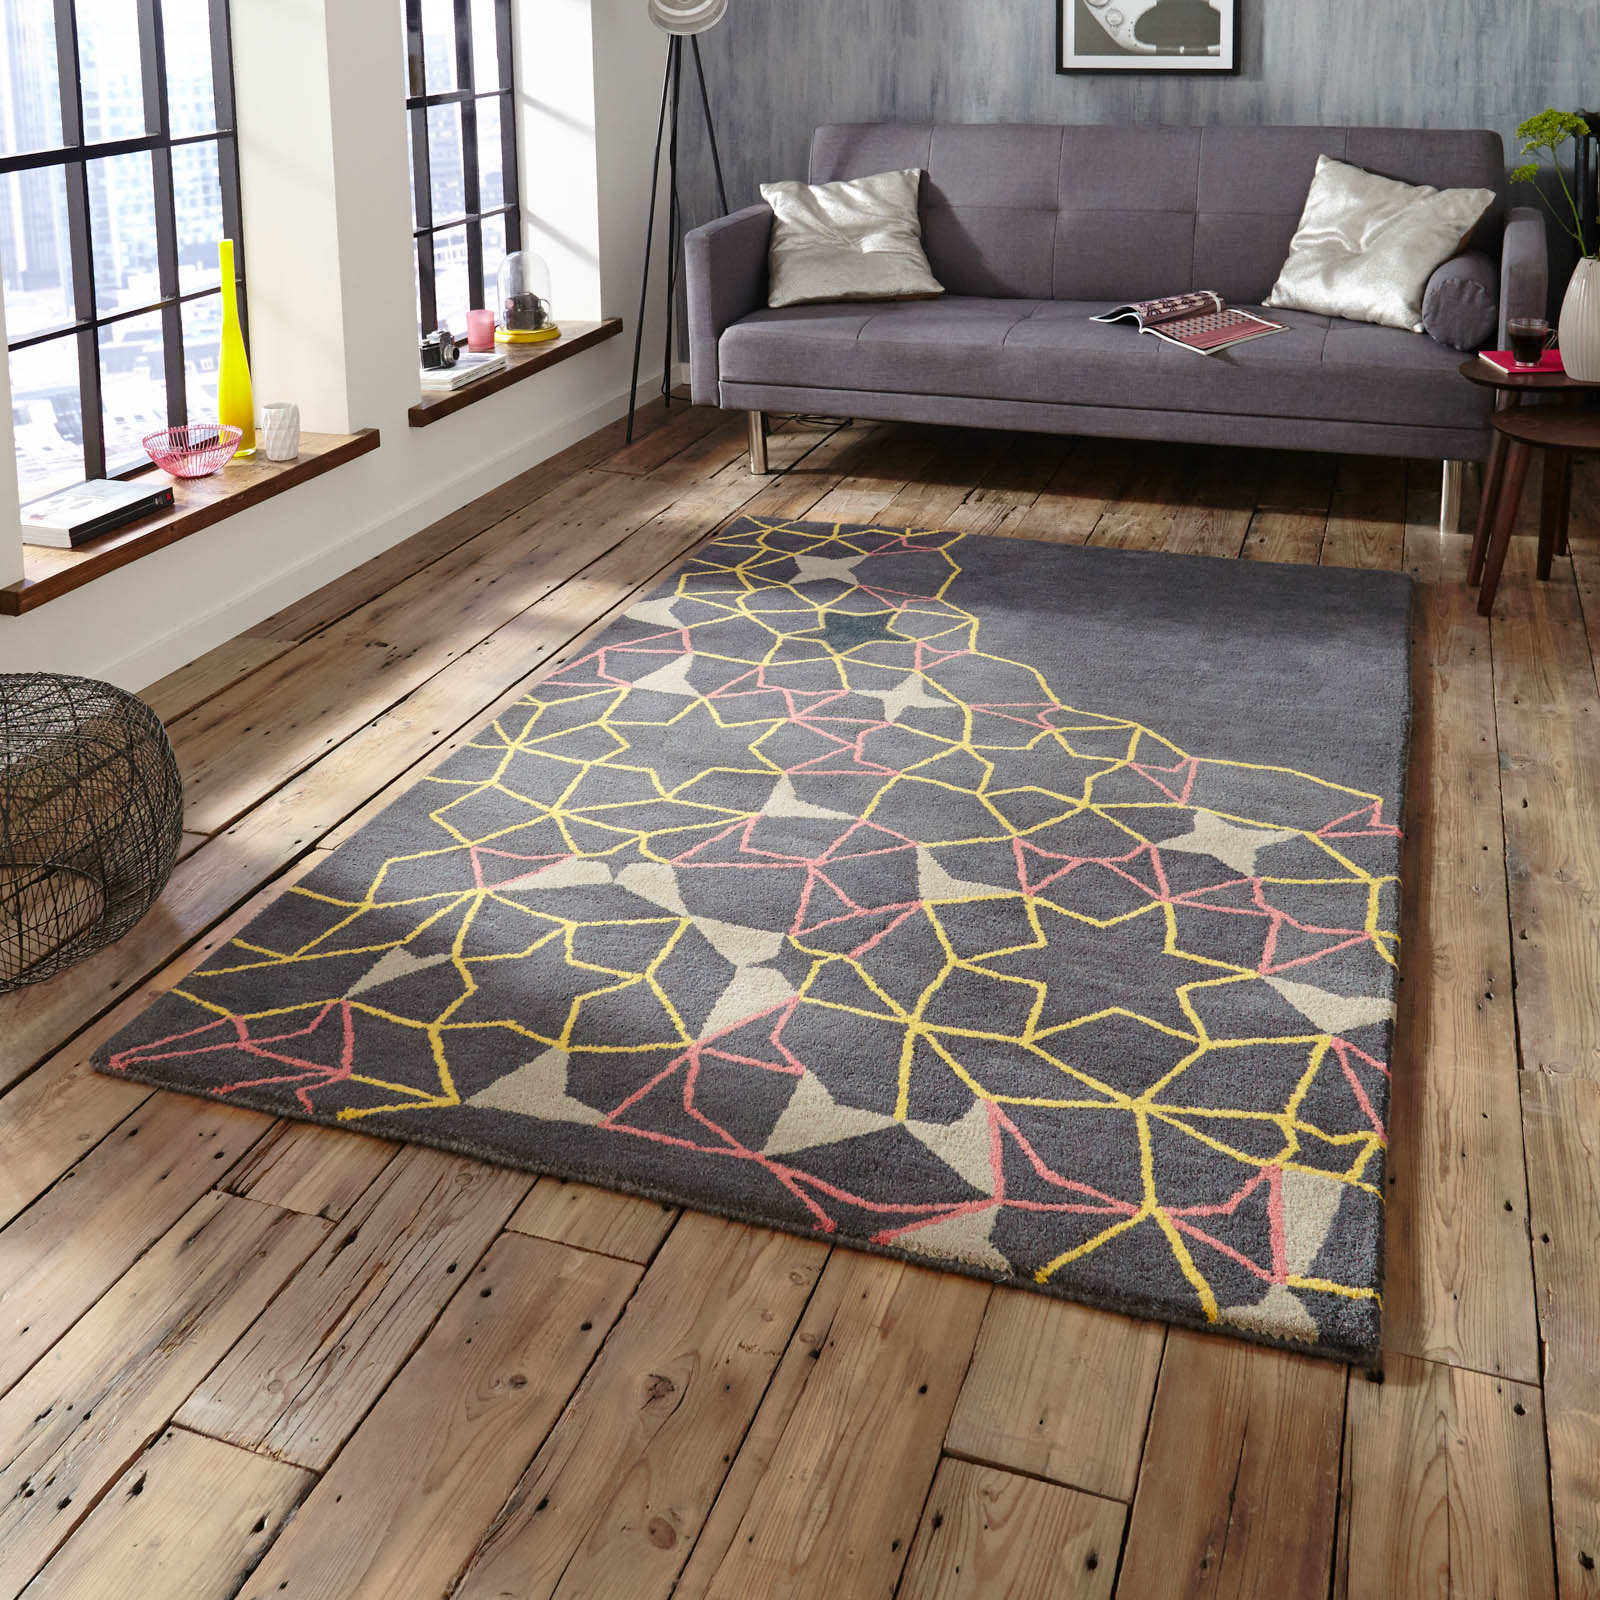 Spectrum SP37 Rugs In Grey Yellow Pink